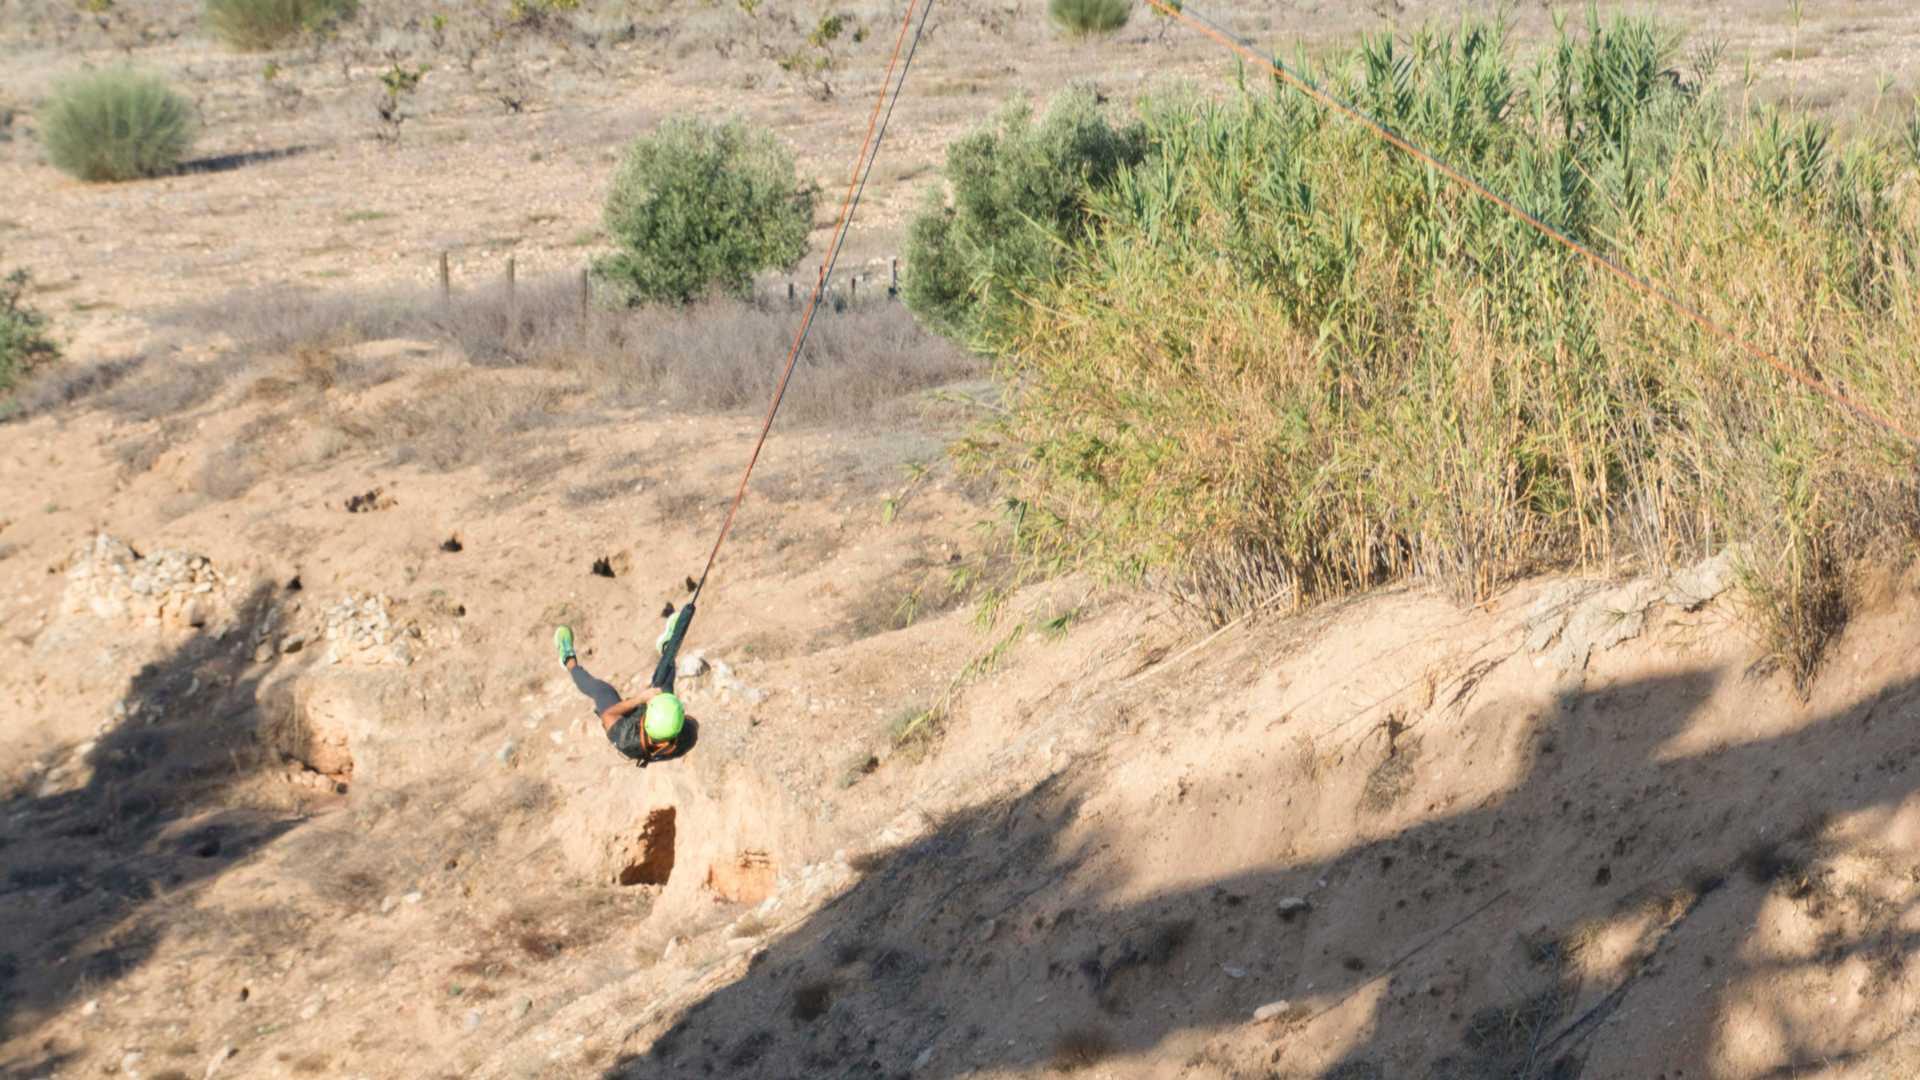 Bungee jumping in Villena